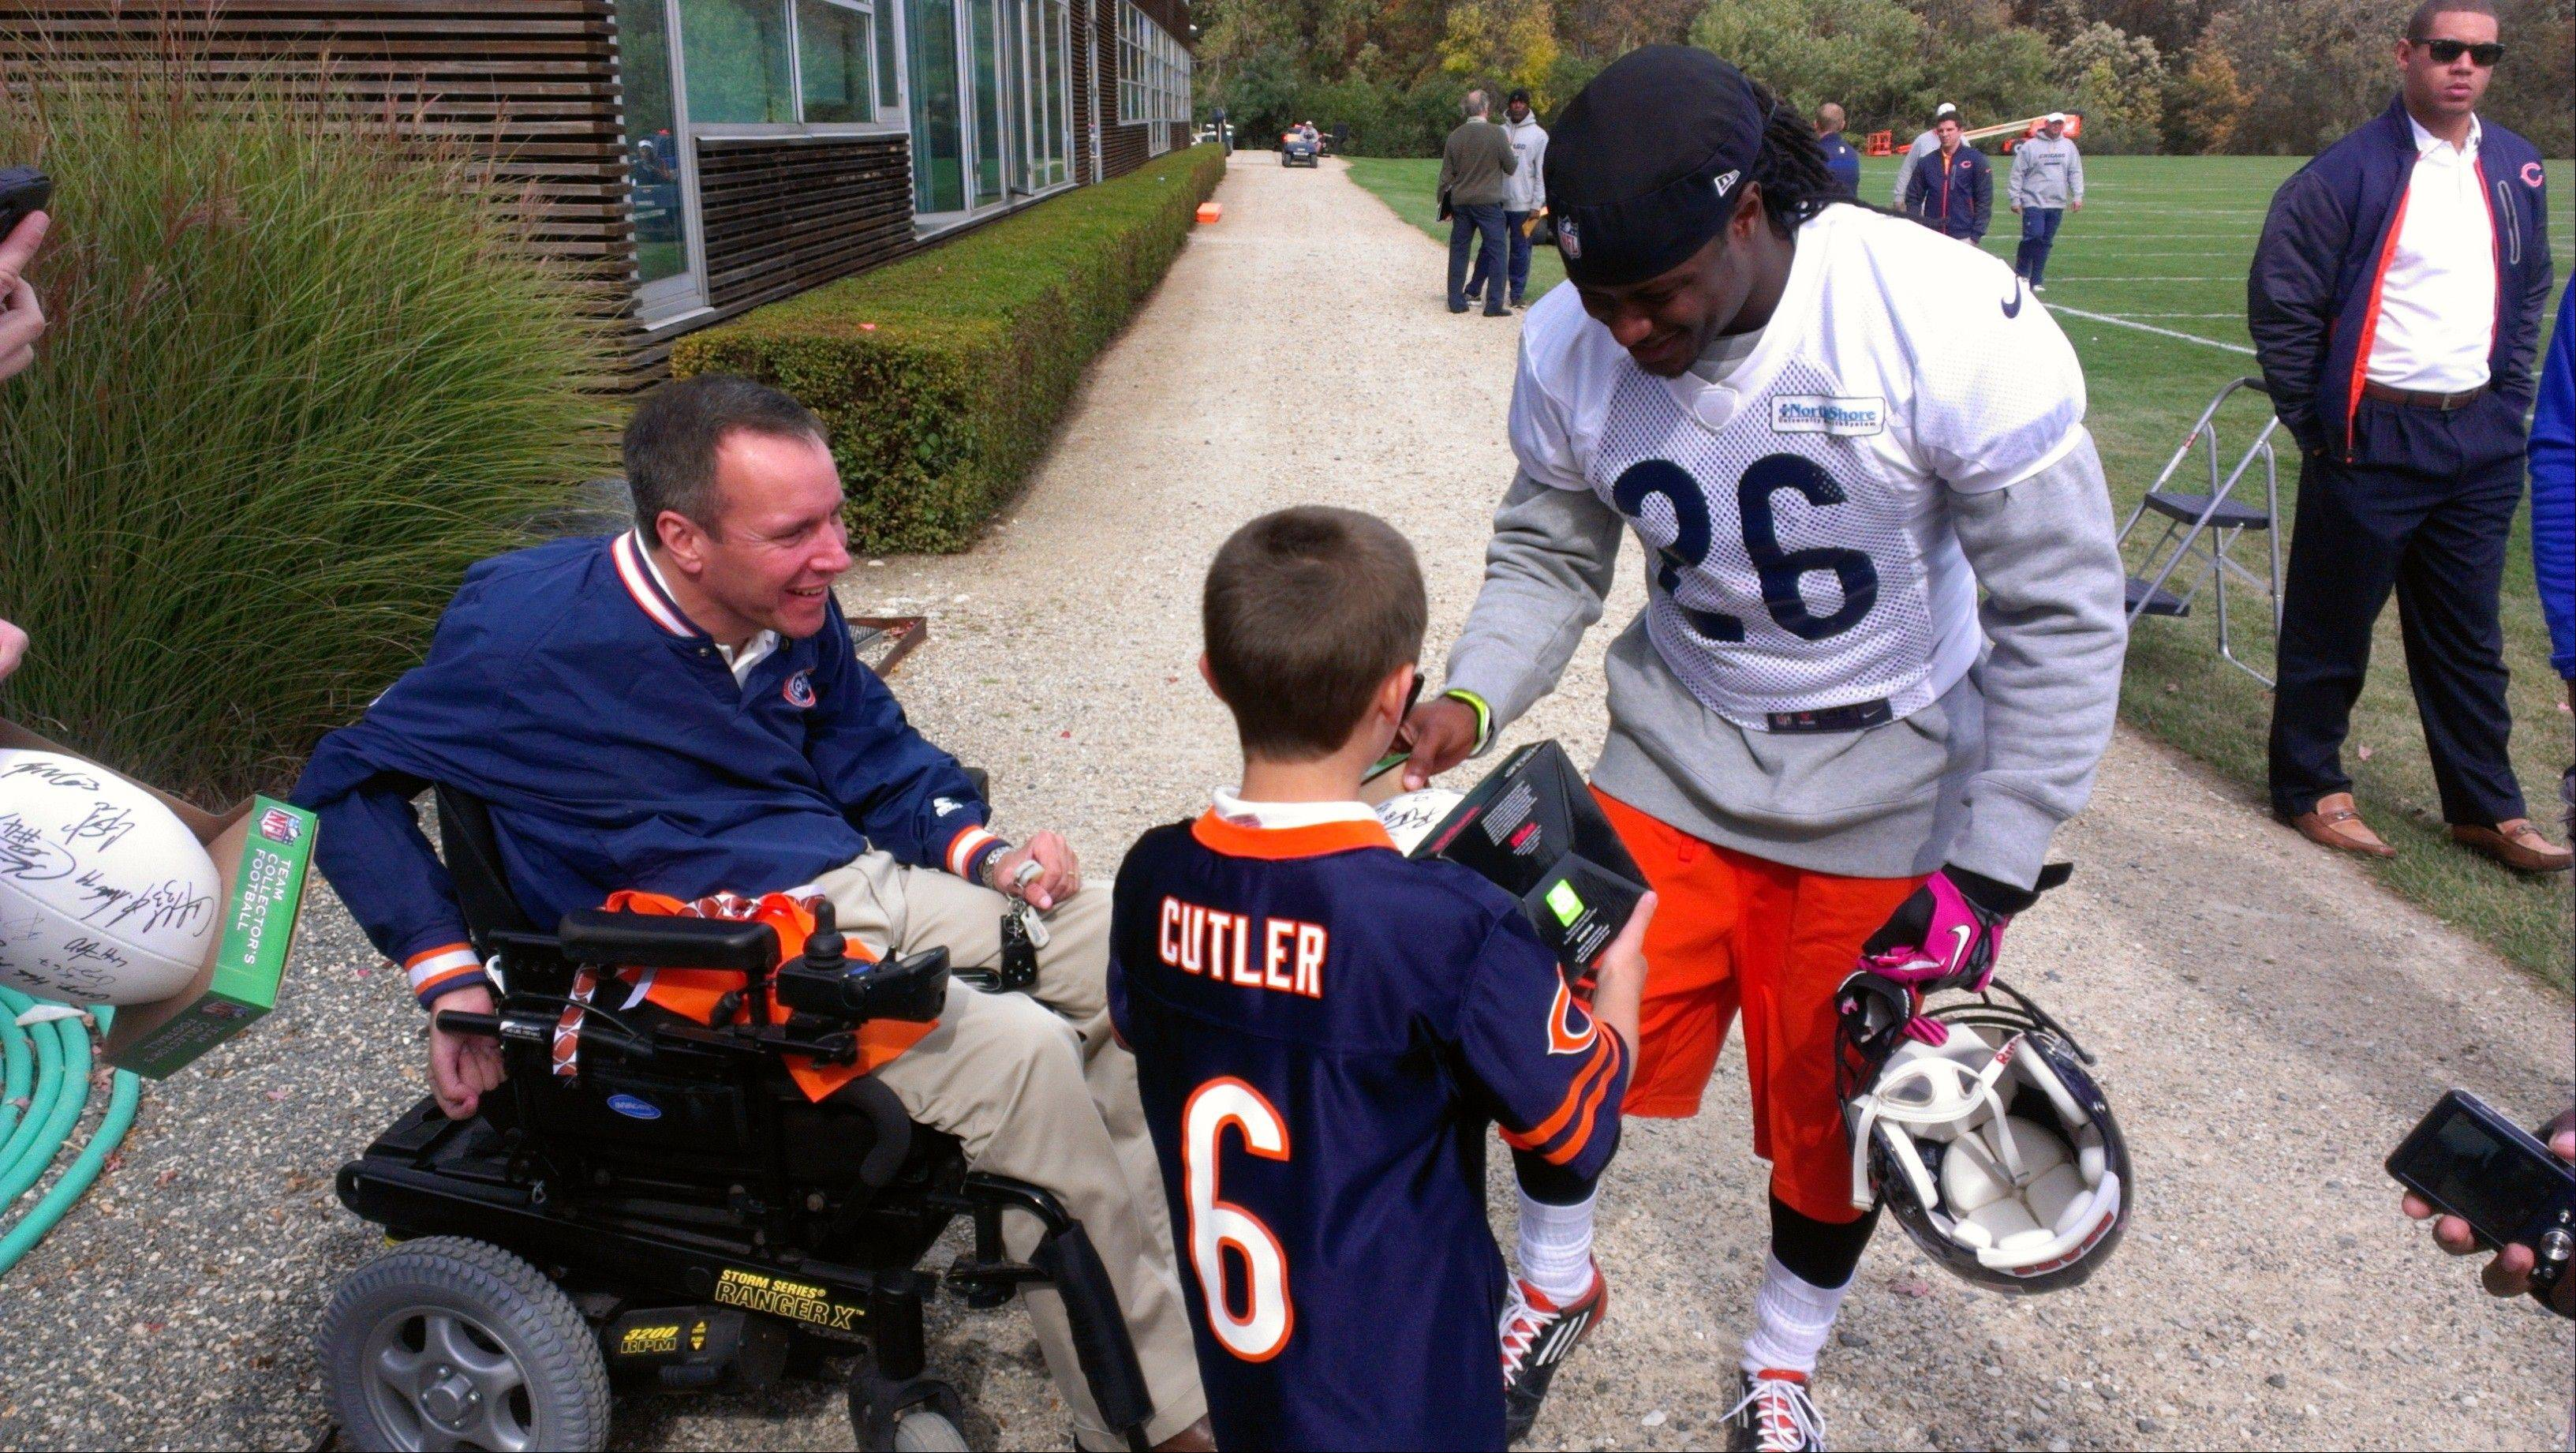 Often working with the Chicago Bears in his post as a founding member of the Gridiron Alliance, a charity that supports young athletes with catastrophic injuries, Steve Herbst coaches sports and remains active with several community organizations. The father of twins, Jack and Grace, the Palatine resident is vying to win a new wheelchair-accessible vehicle.